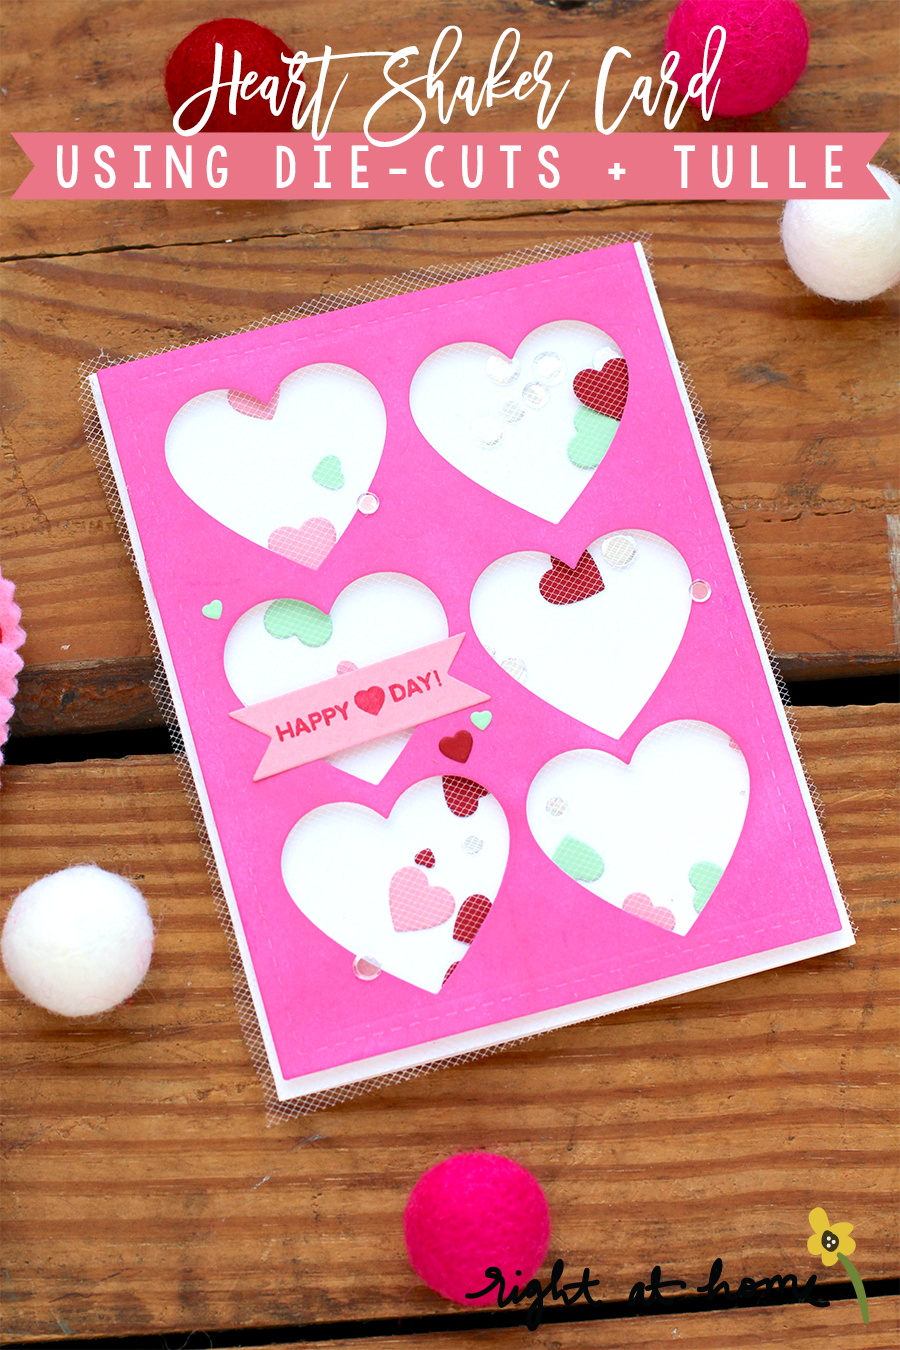 Day #9: Heart Shaker Card Using Die-Cuts + Tulle // rightathomeshop.com/blog